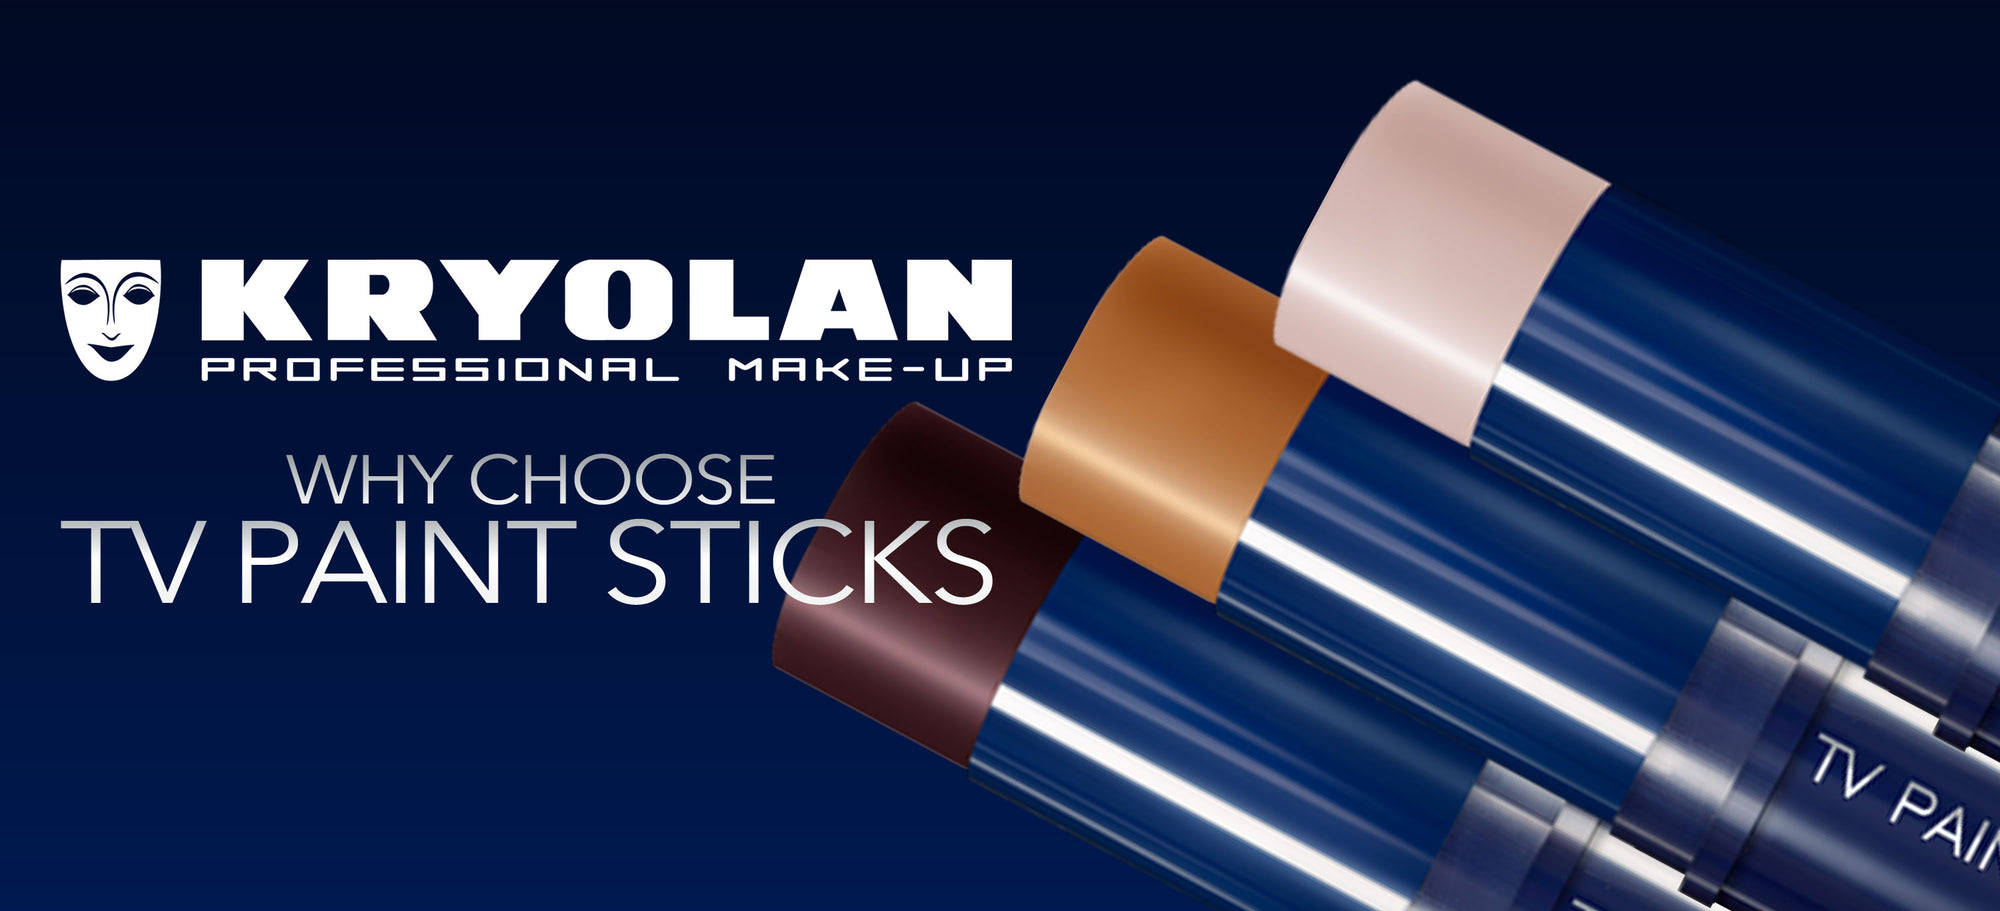 Why Choose Kryolan TV Paint Sticks?